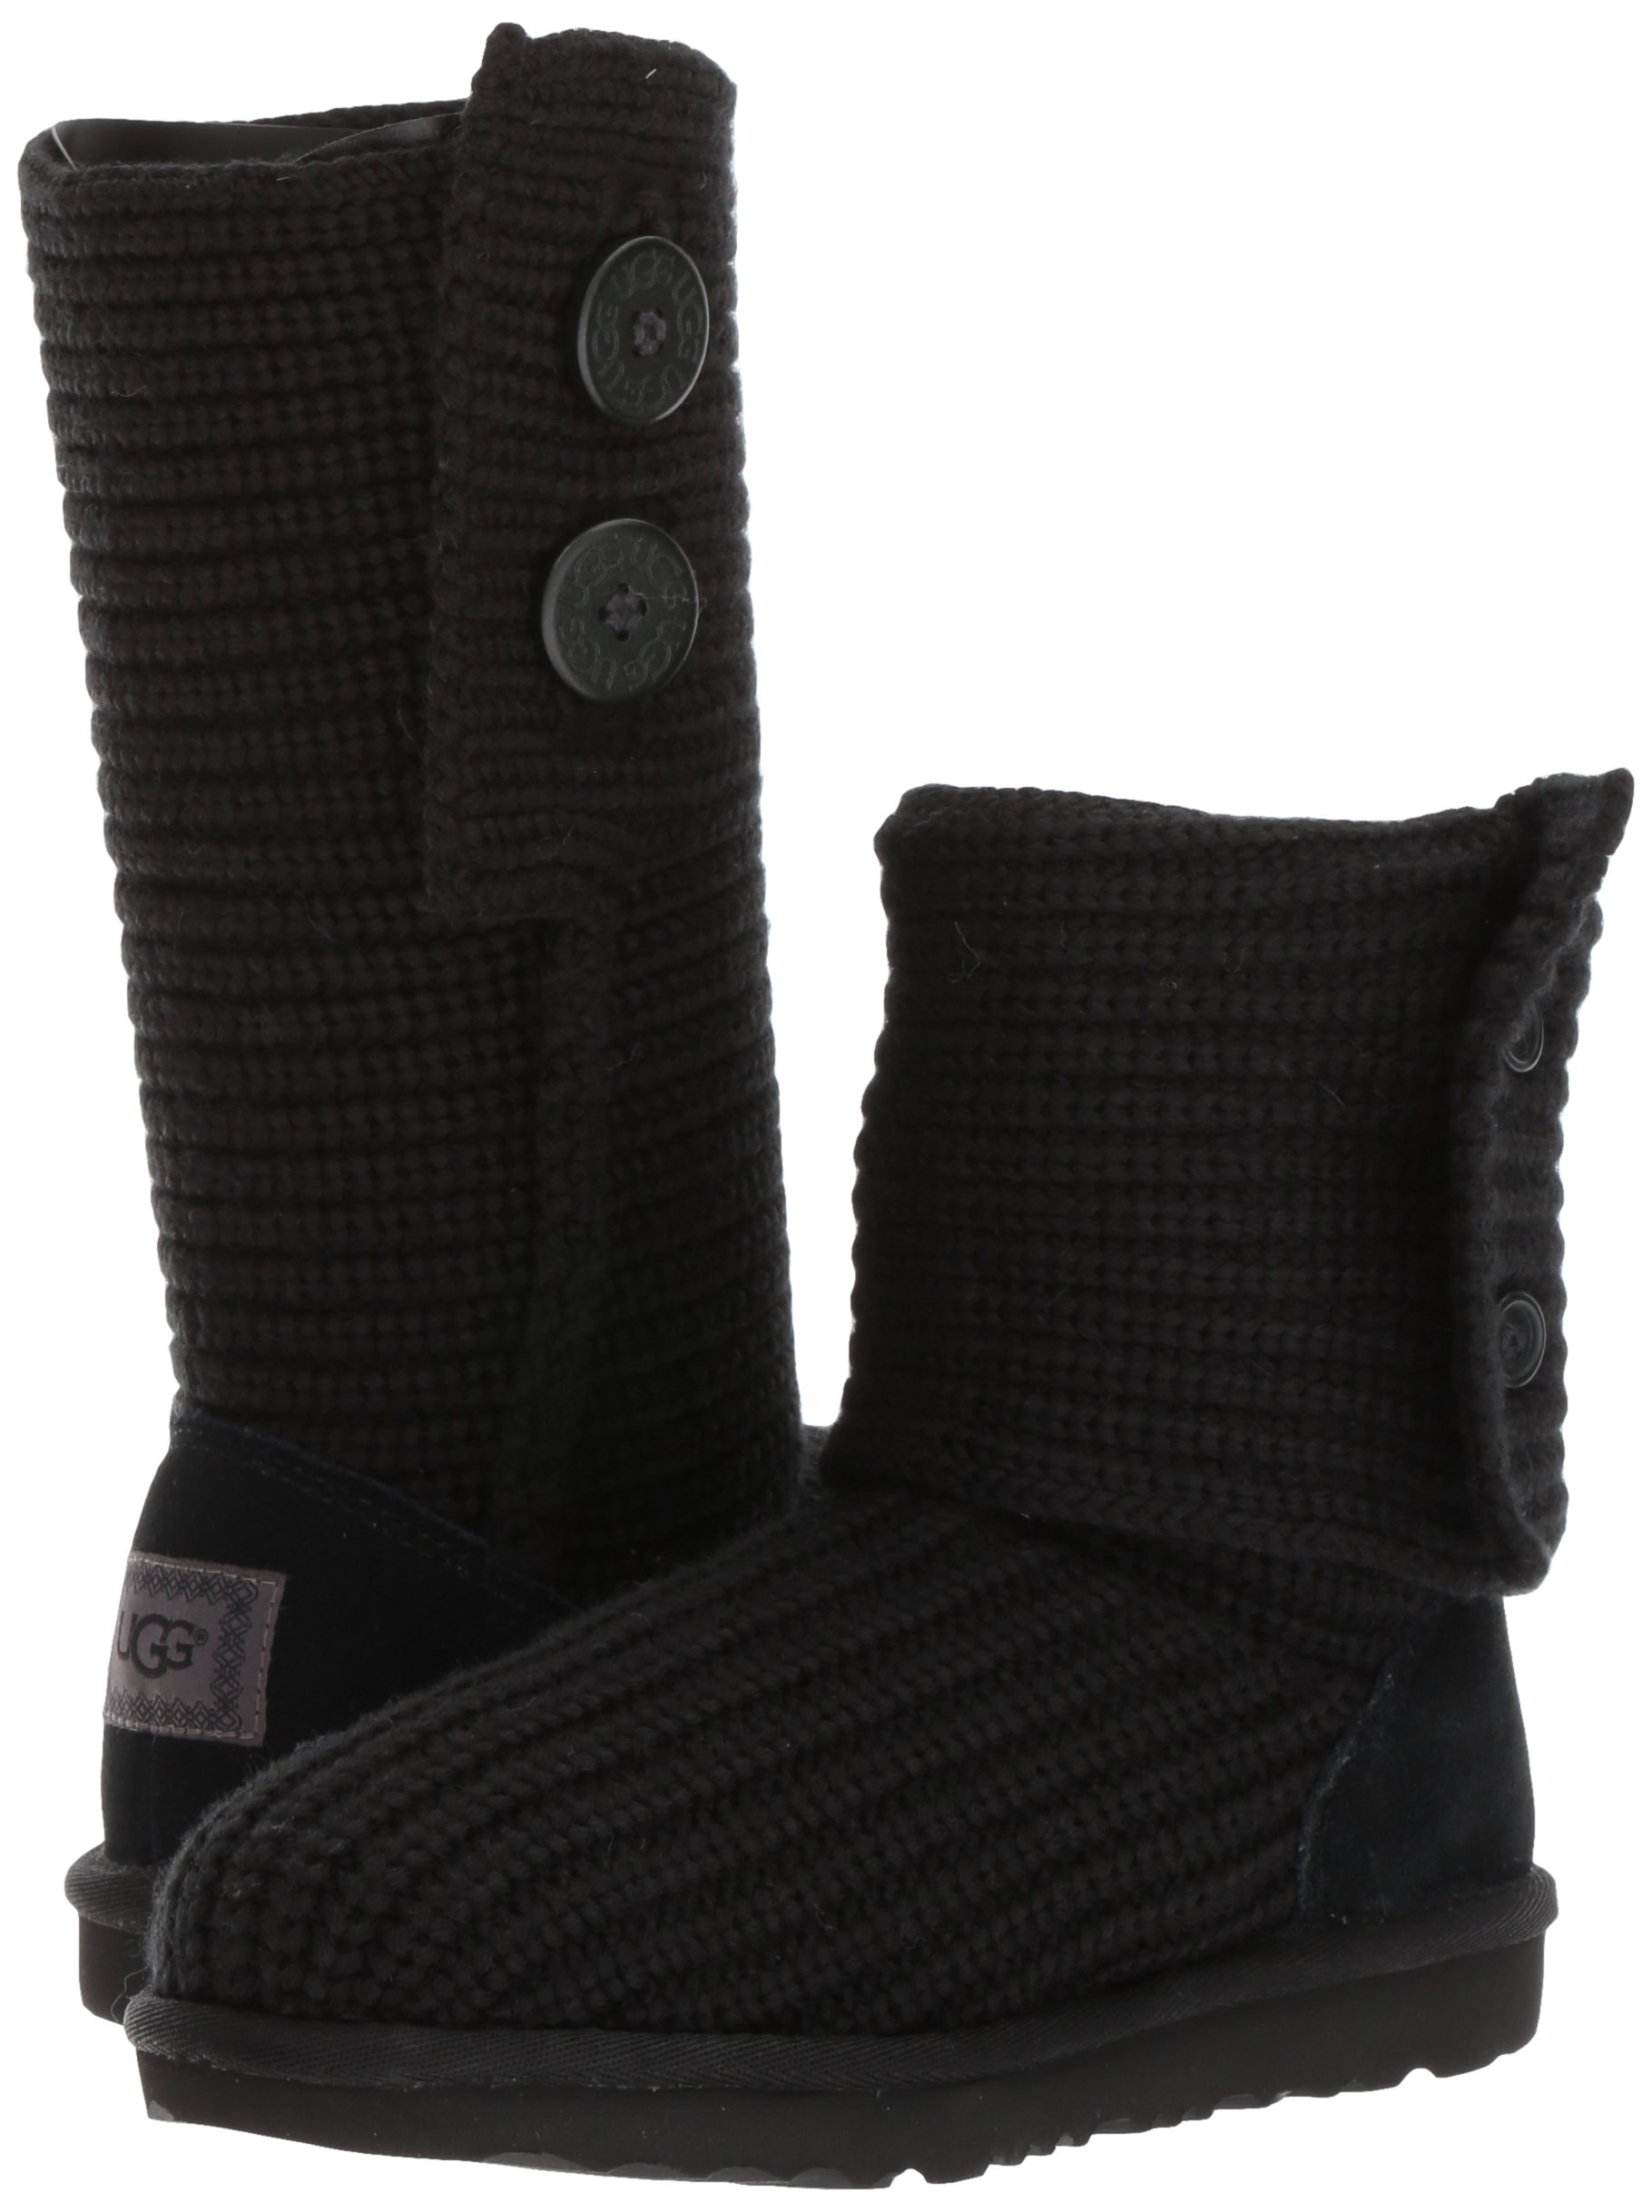 UGG Girls K Cardy II Pull-On Boot, Black, 8 M US Toddler by UGG (Image #6)